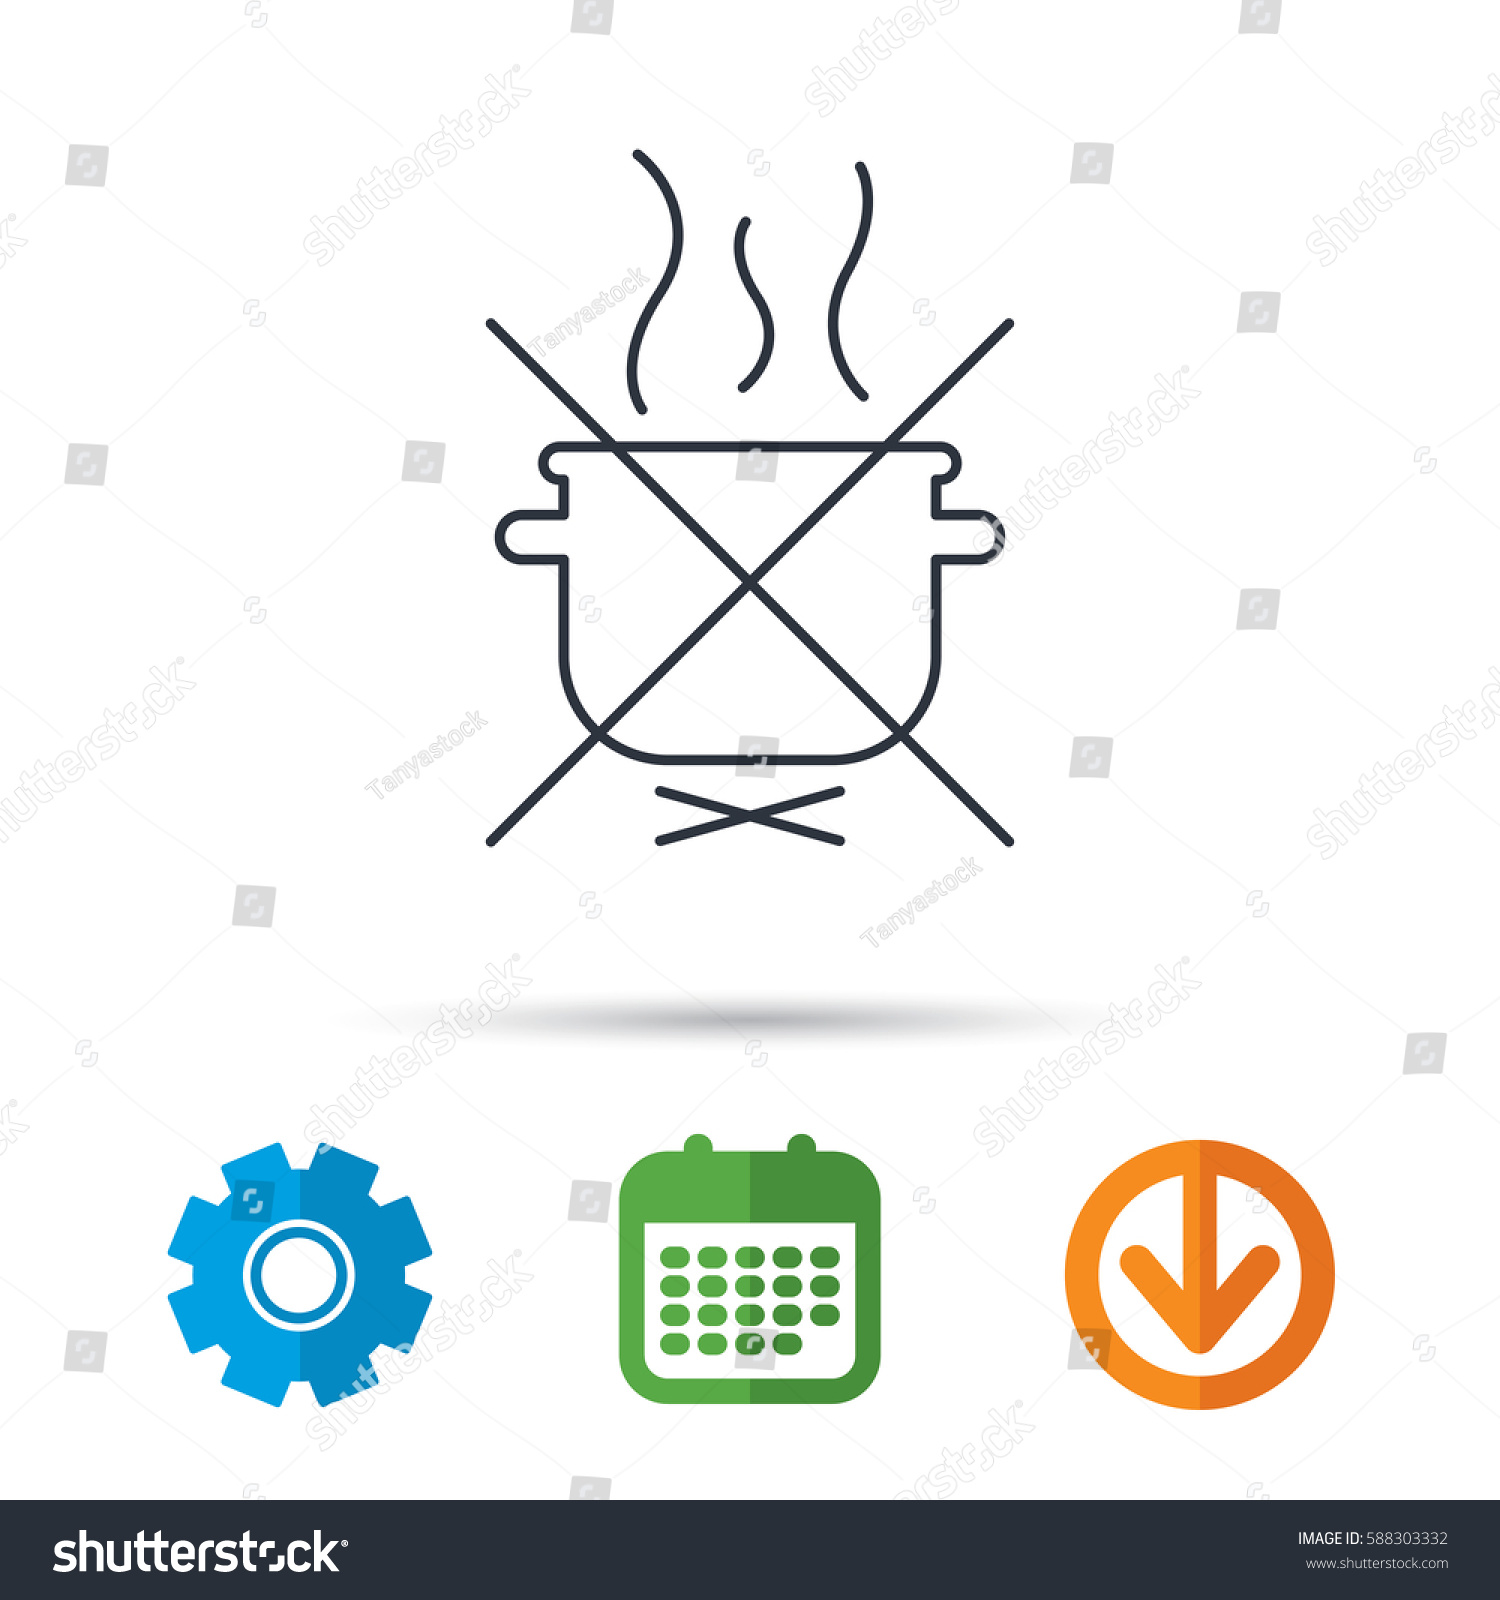 hight resolution of boiling saucepan icon do not boil water sign cooking manual attenction symbol calendar